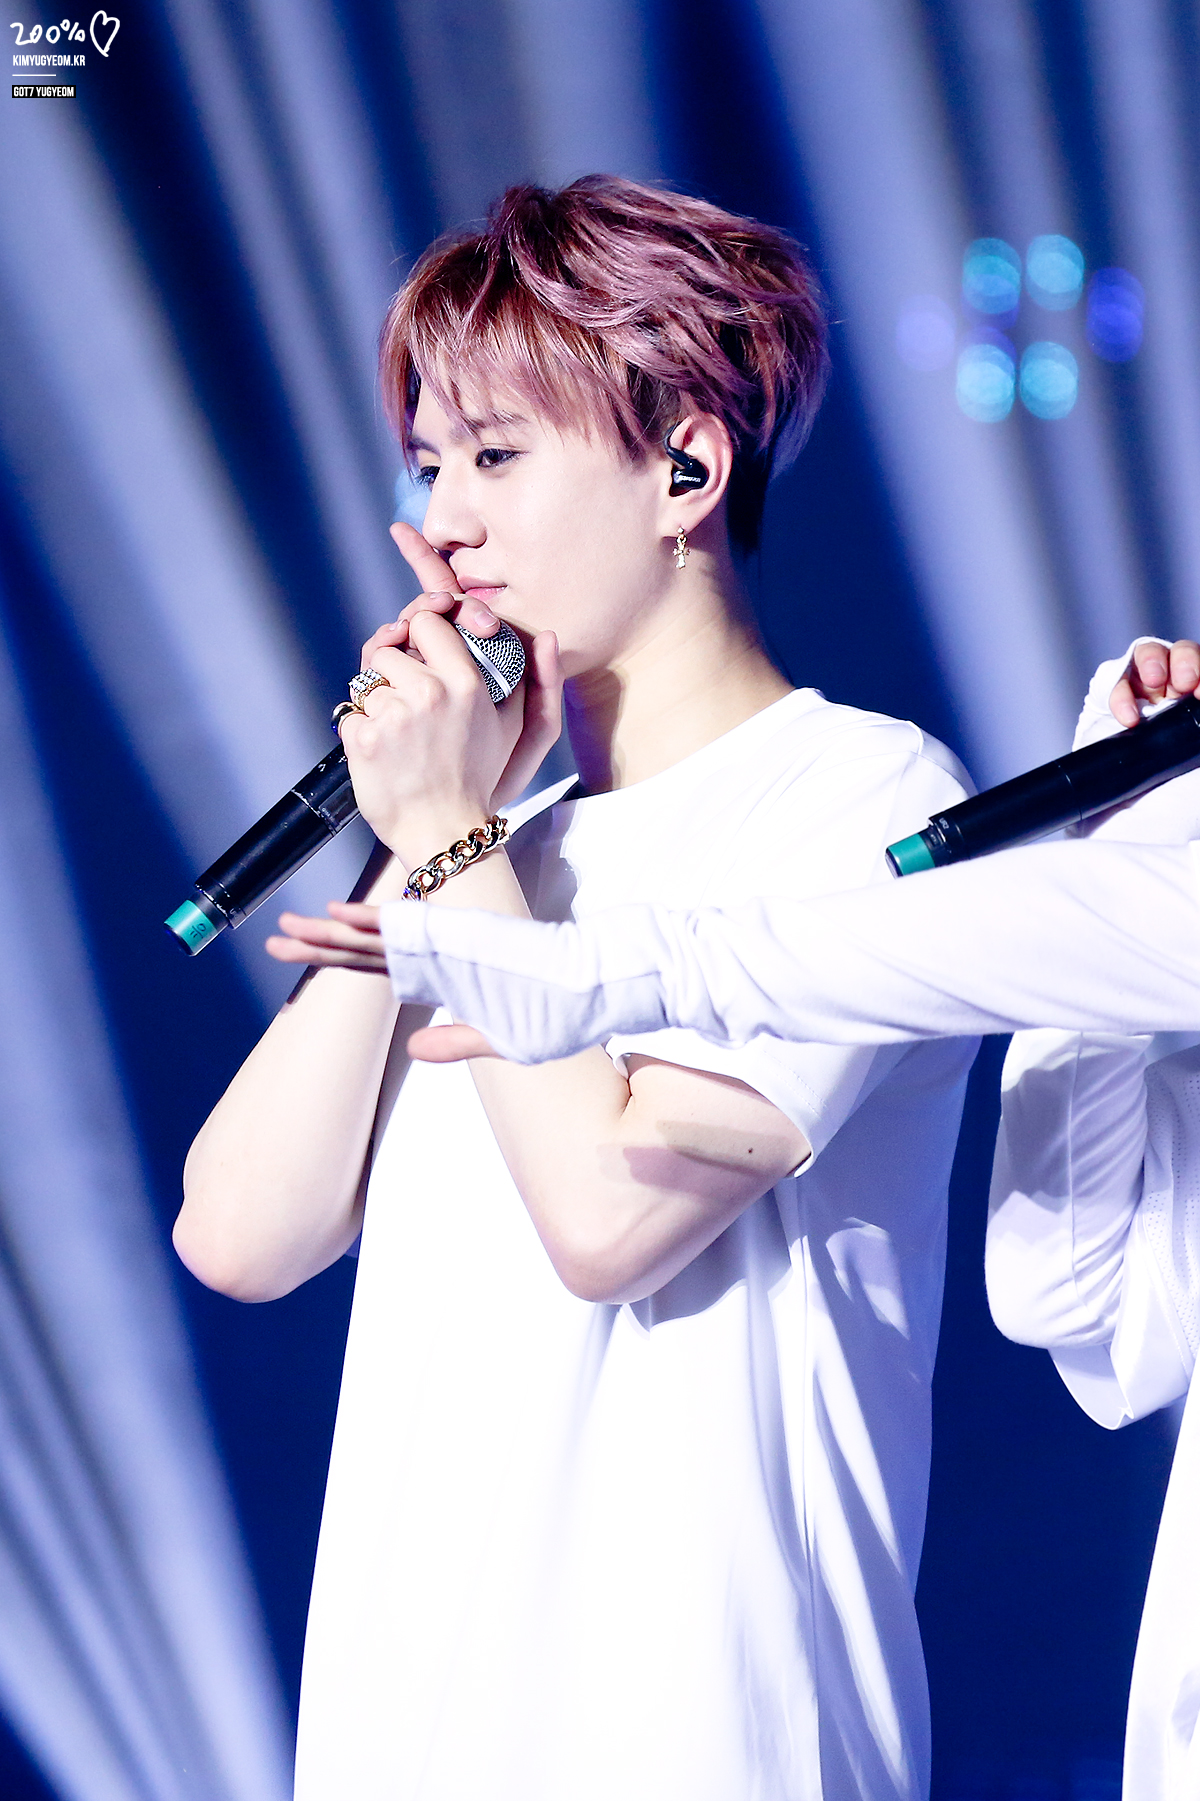 Cute Wallpaper Images For Facebook Yugyeom Profile Kpop Music